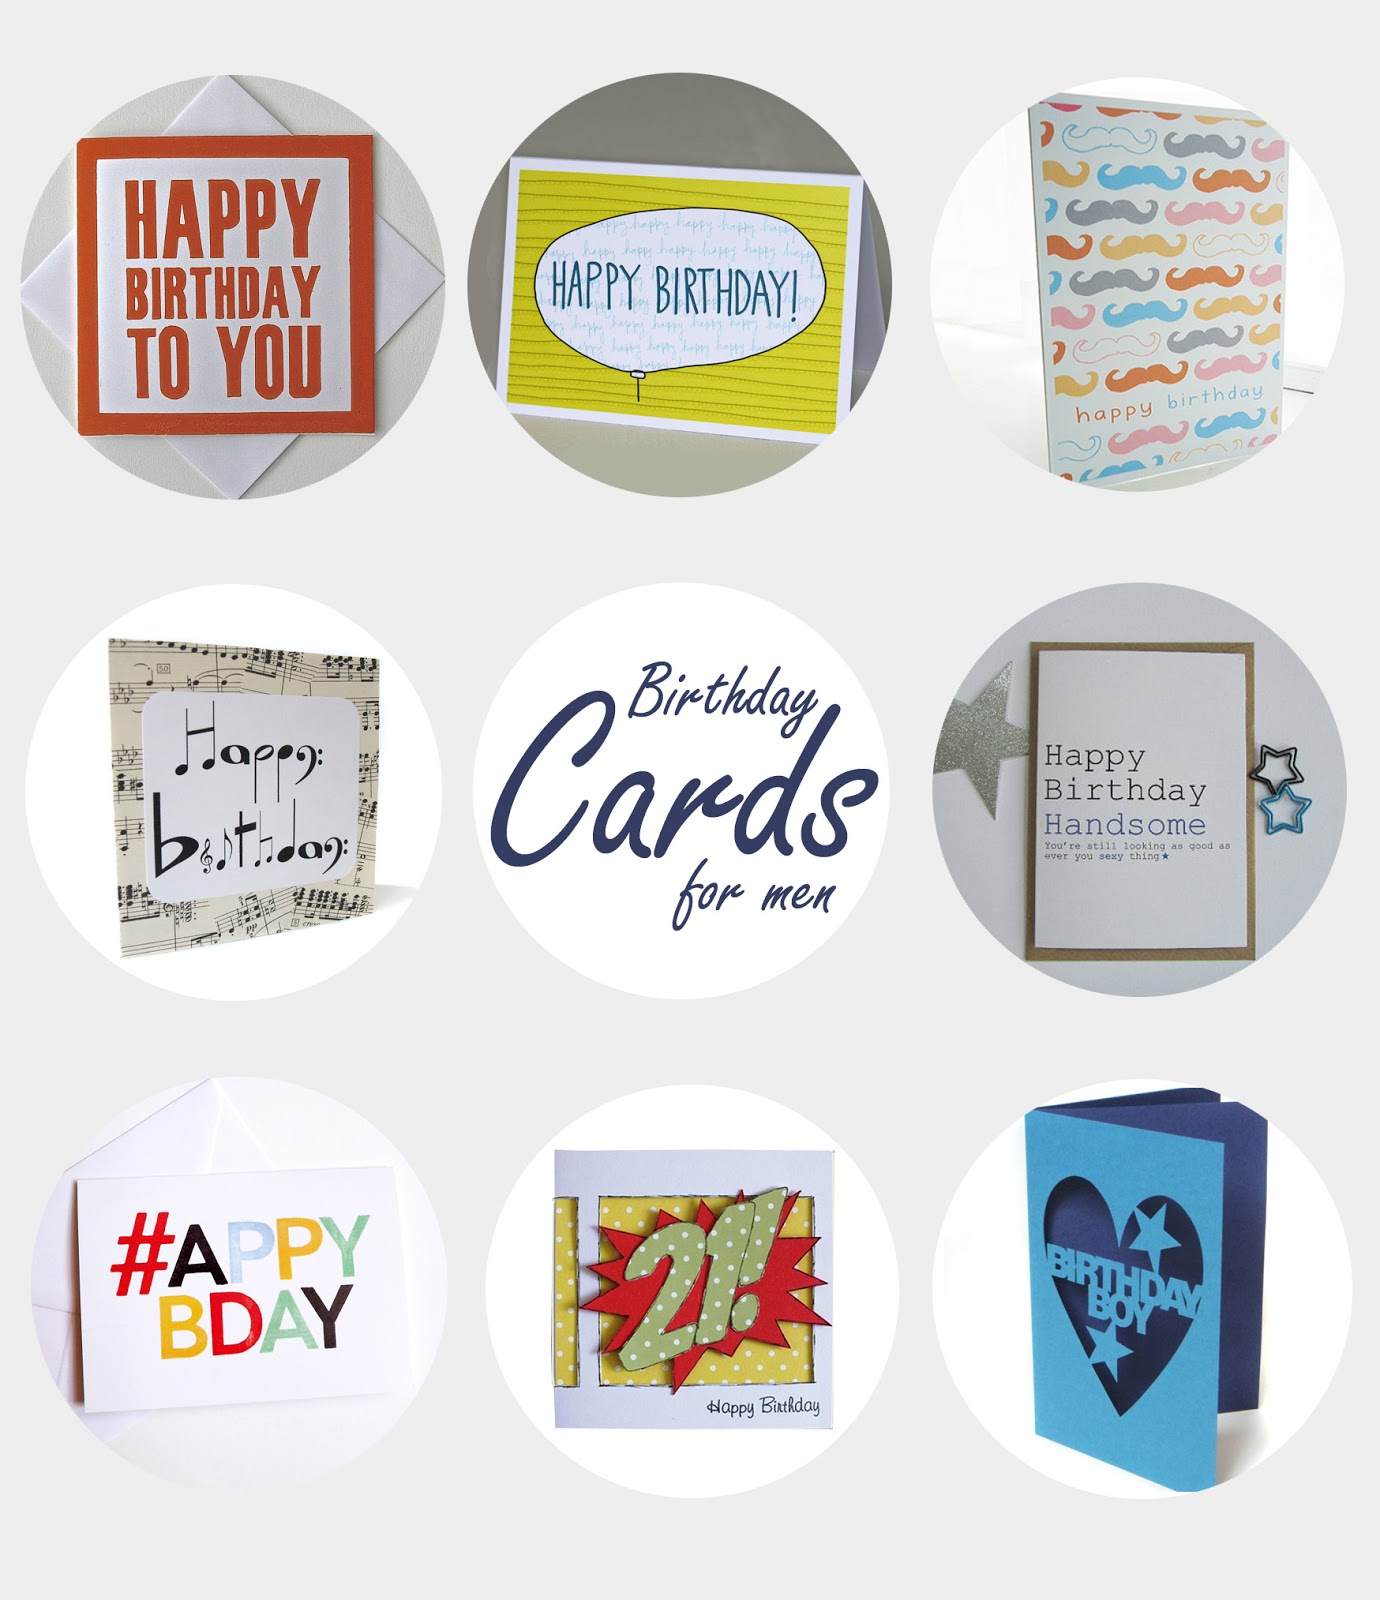 Say It Says Best Birthday Cards For Men